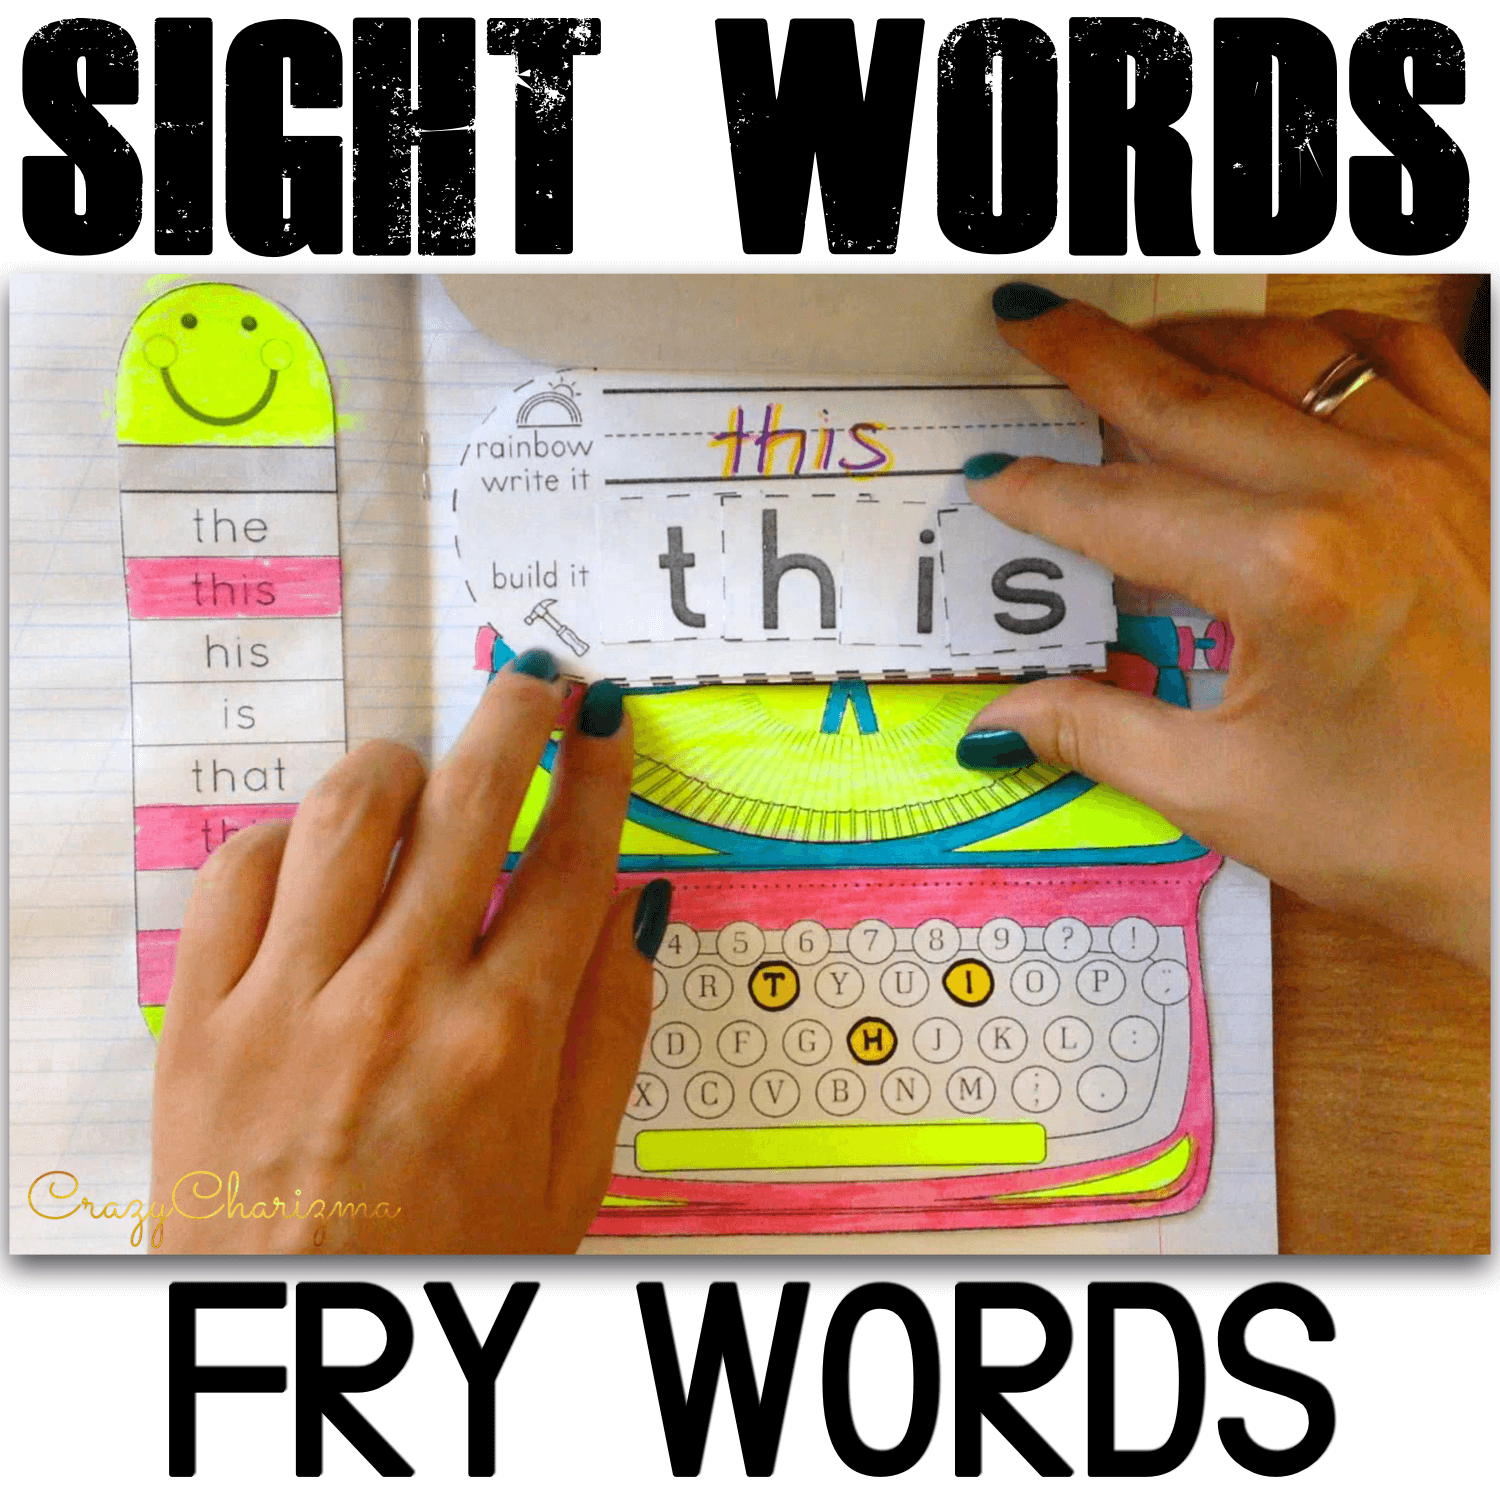 Let's teach Fry sight words in a fun way! The packet has practical, step-by-step exercises to help kindergarten and First Grade children learn to sight-read, write, and practice 200 essential high-frequency words.